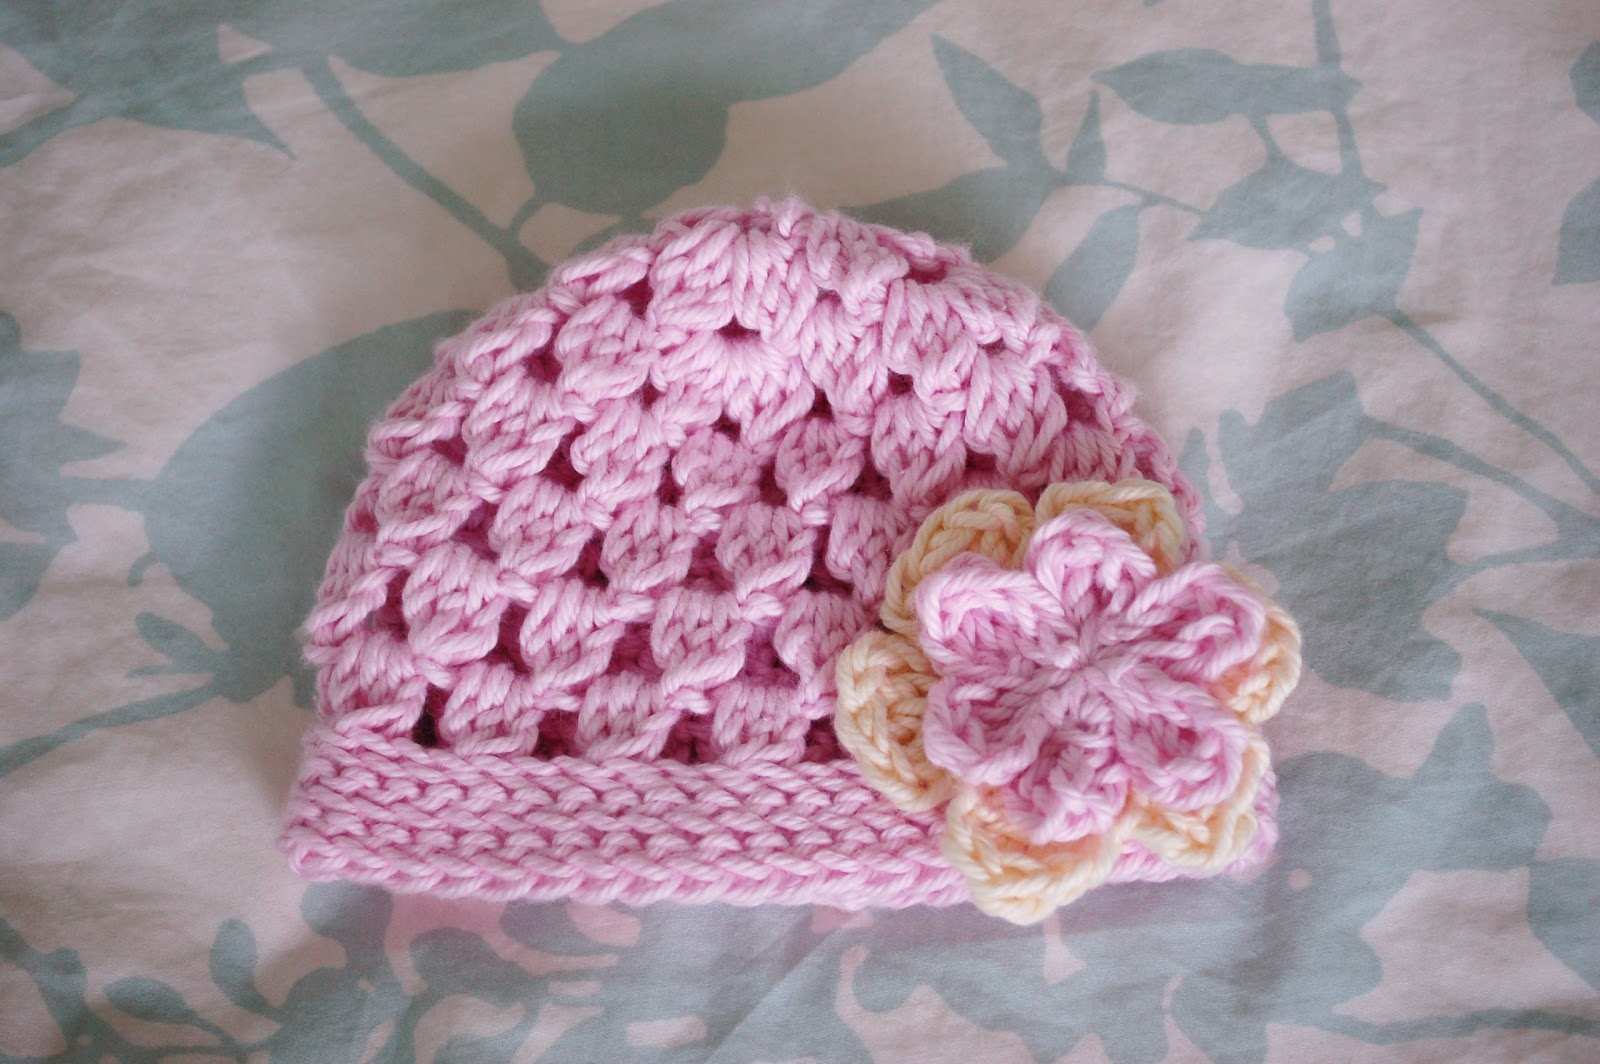 Crochet Patterns Newborn Hats : Download Crochet Patterns, Baby Sara Beanie Hat Crochet Pattern